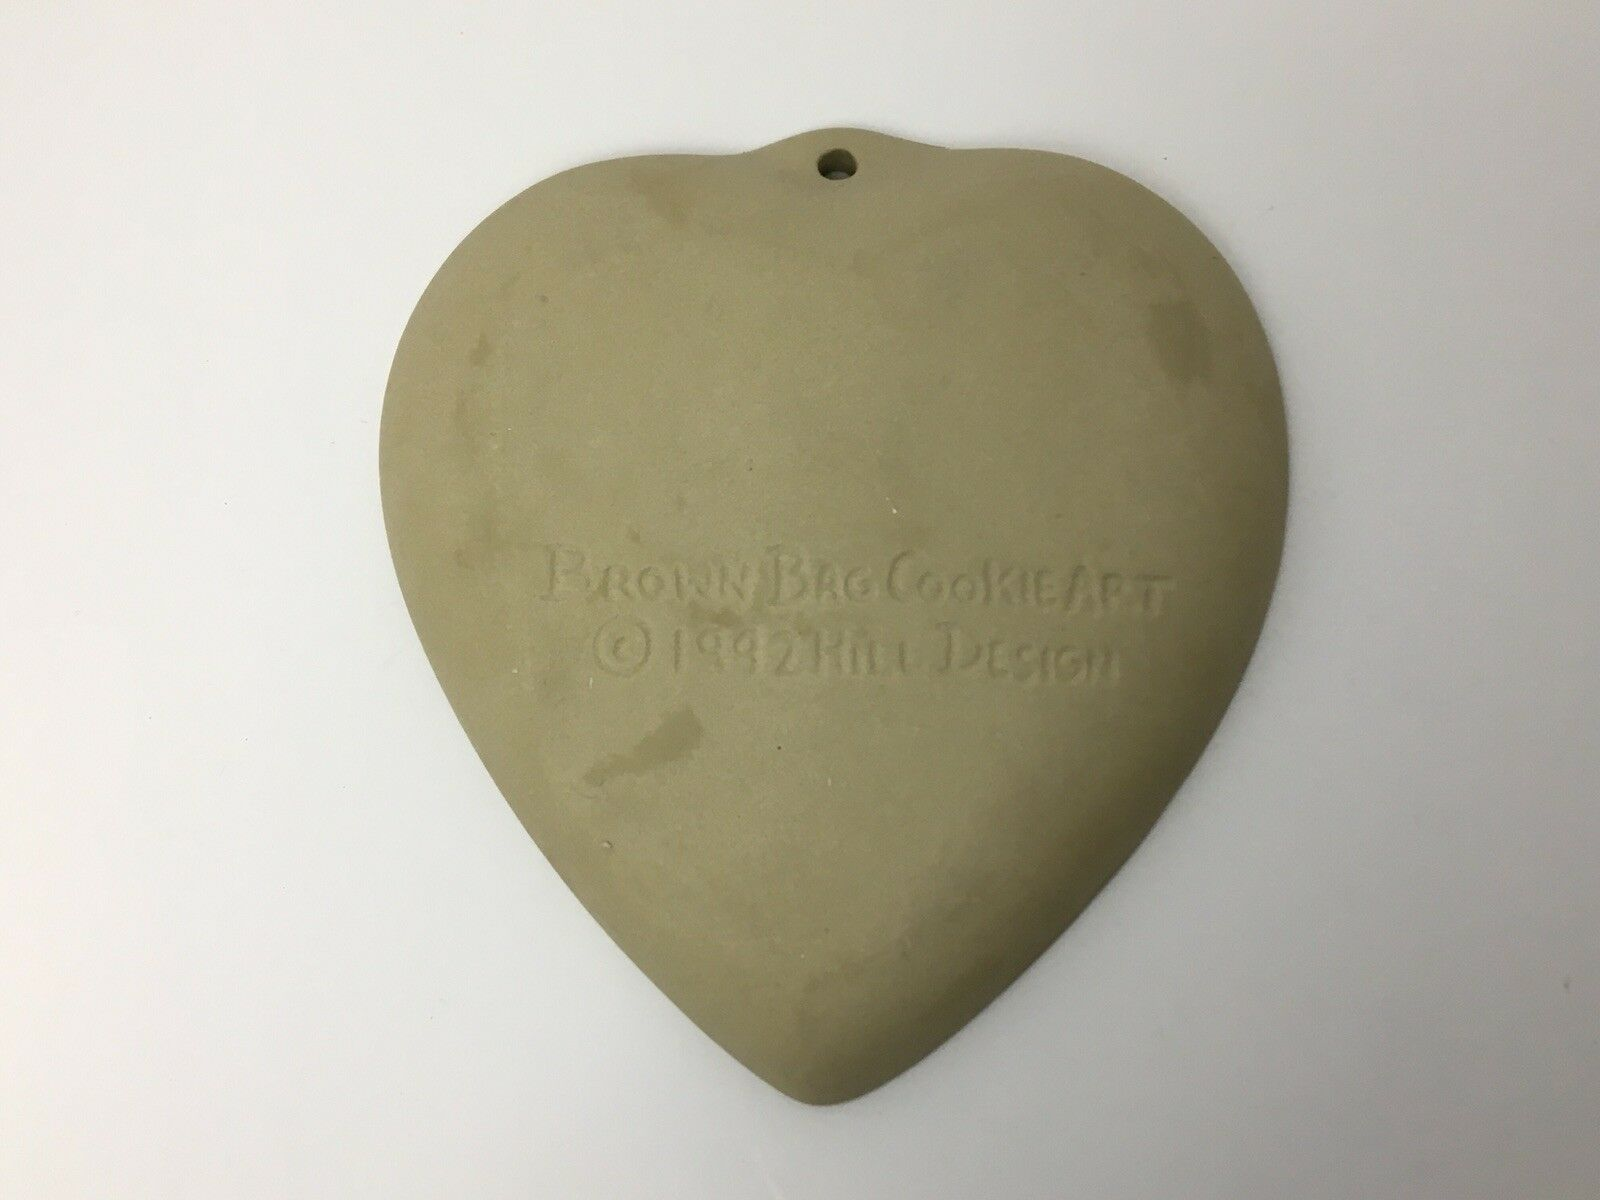 Vtg Cookie Press Cupid Heart Love Craft Brown Bag Food Mold USA Valentines Day image 12